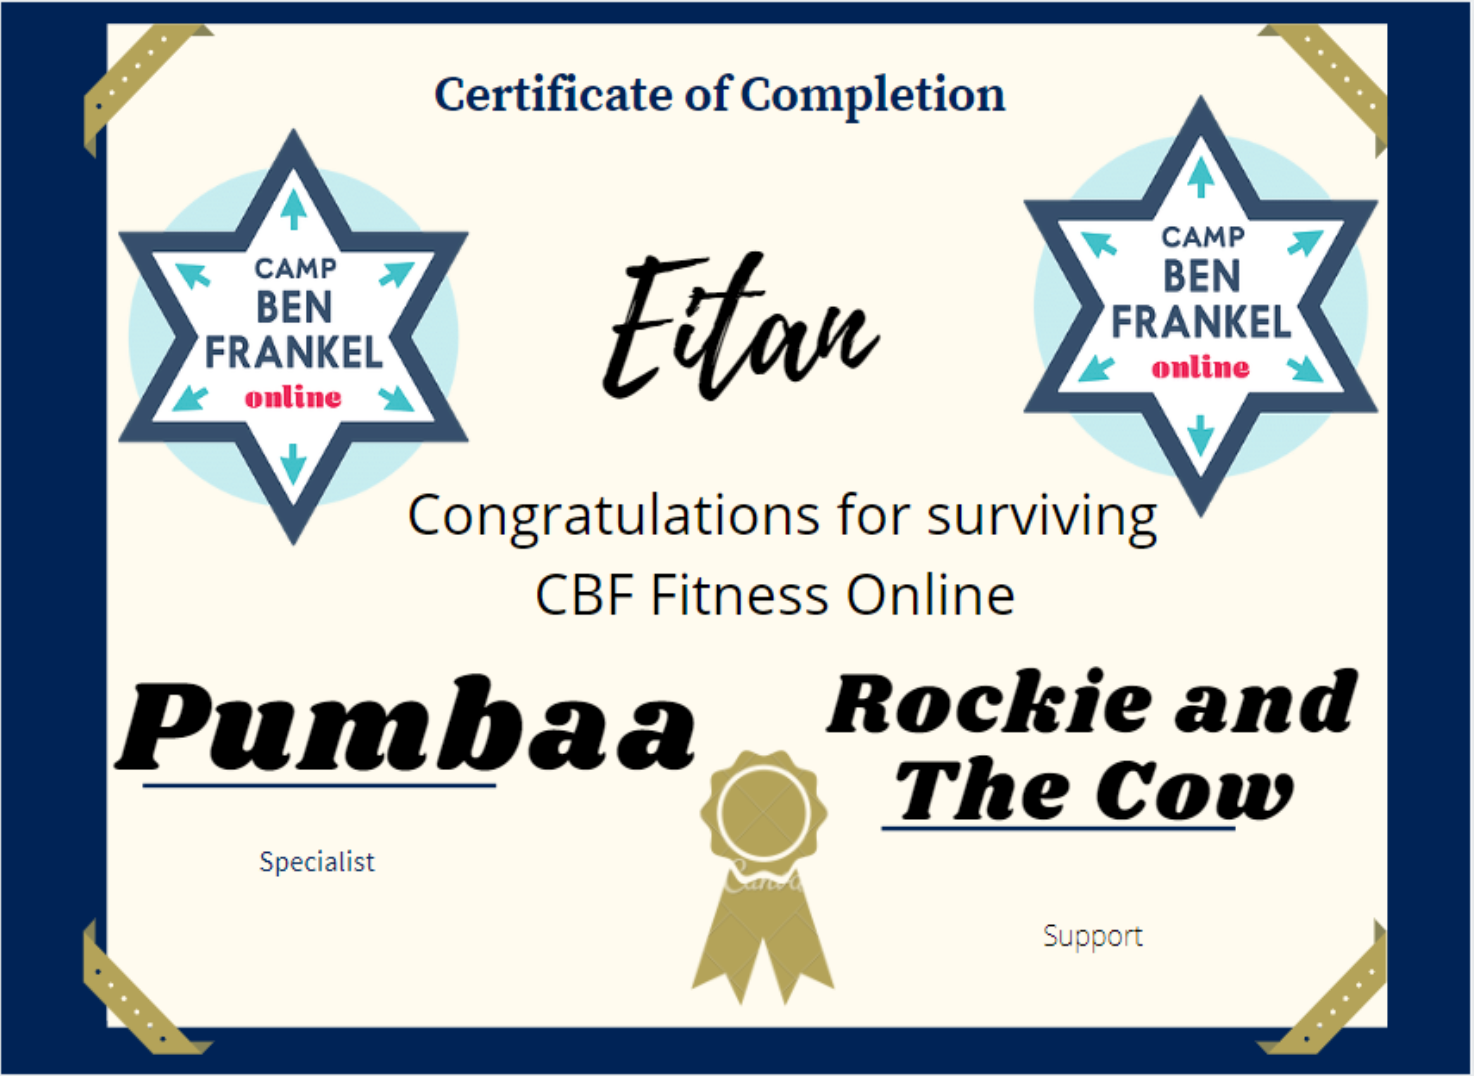 Eitan - Certificate of Completion